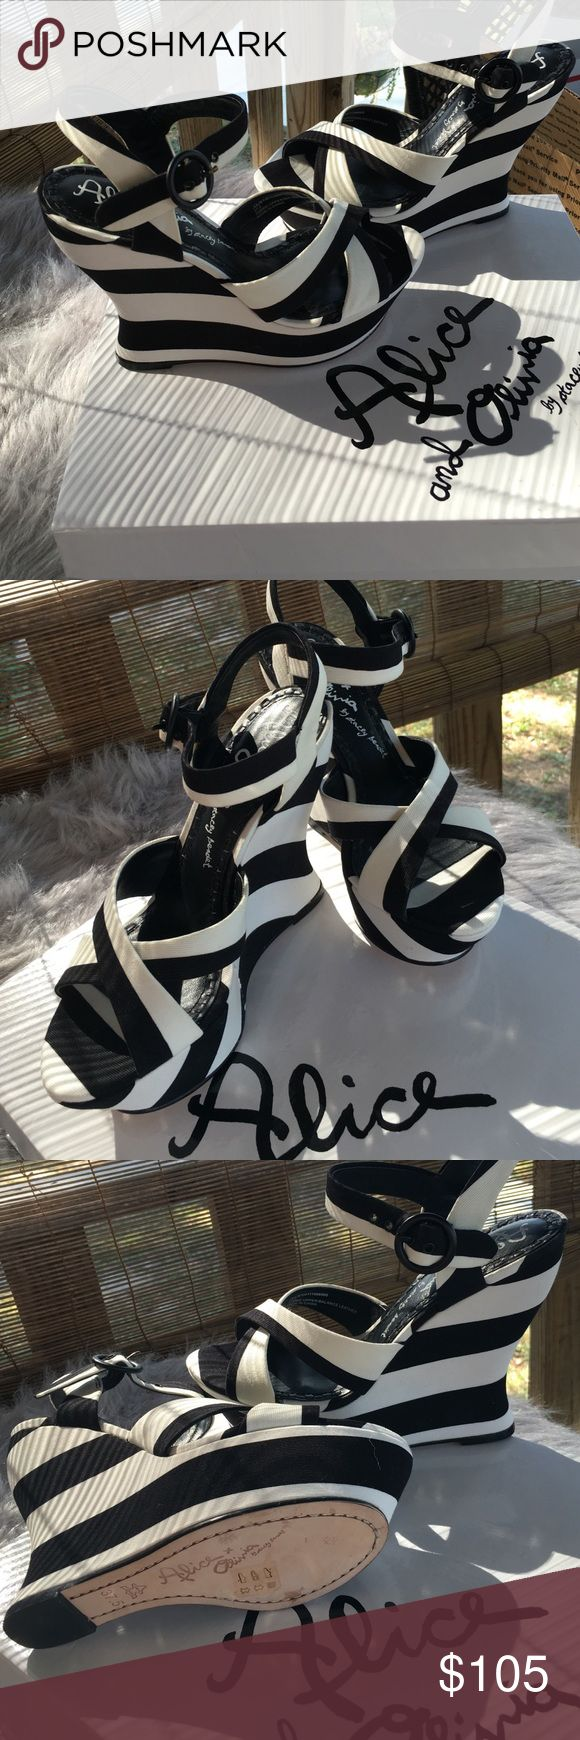 Alice & Olivia wedges Absolutely gorgeous Alice & Olivia black and white stripe wedges . Pictures do no justice to these wedges , these are awesome . I purchased these brand new online and they sent me the wrong size :( they are brand new in original box . A must have :) Alice + Olivia Shoes Wedges